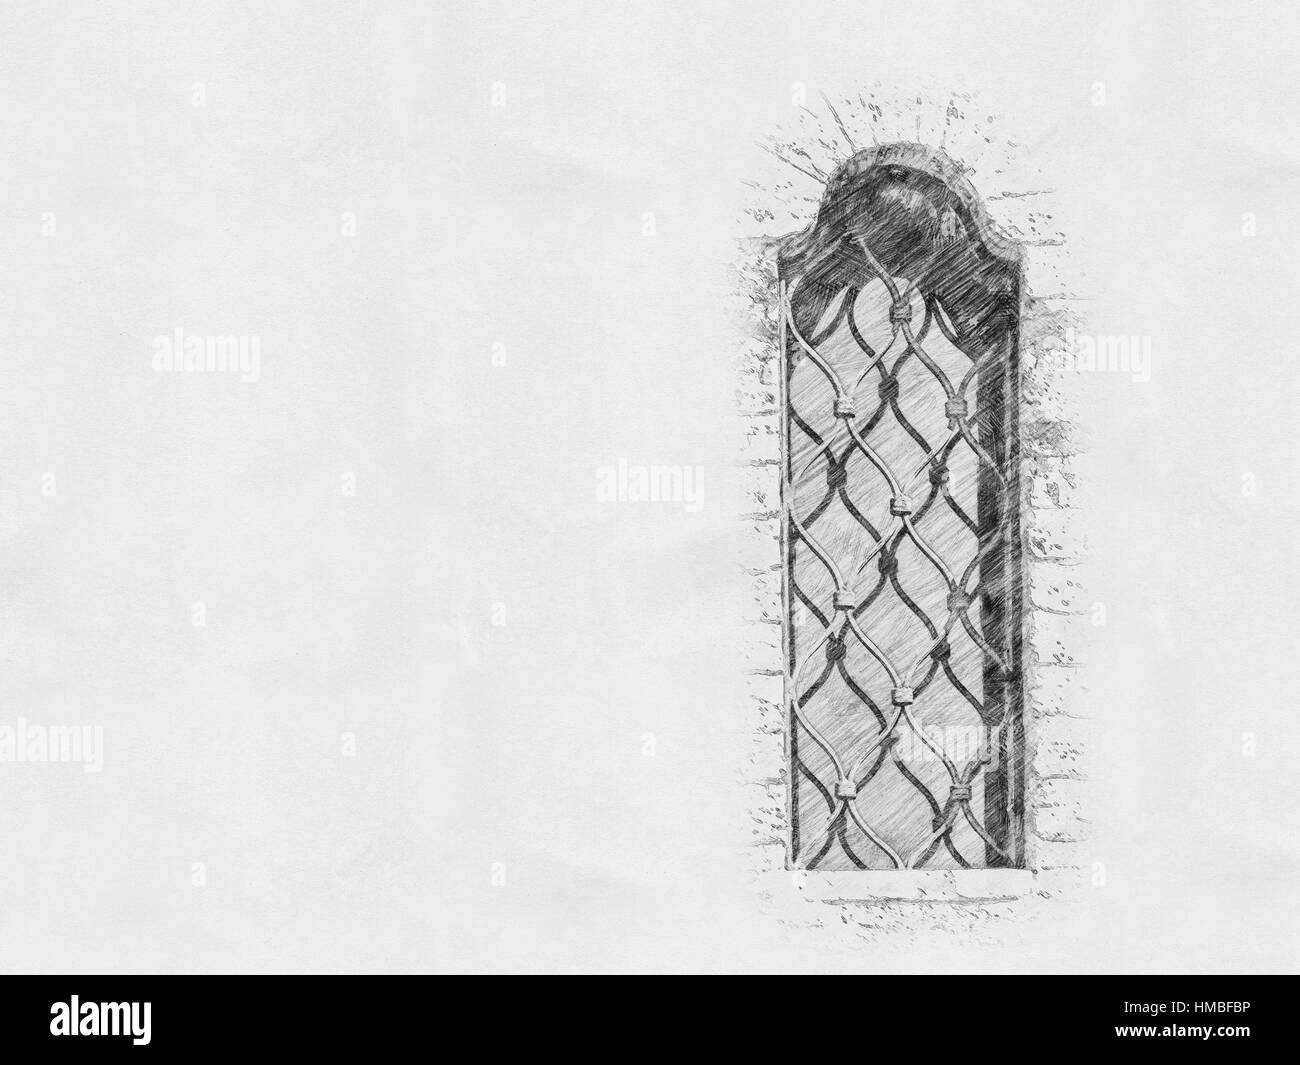 Pencil sketch building black and white stock photos images alamy old castle window crayon sketch stock image thecheapjerseys Images